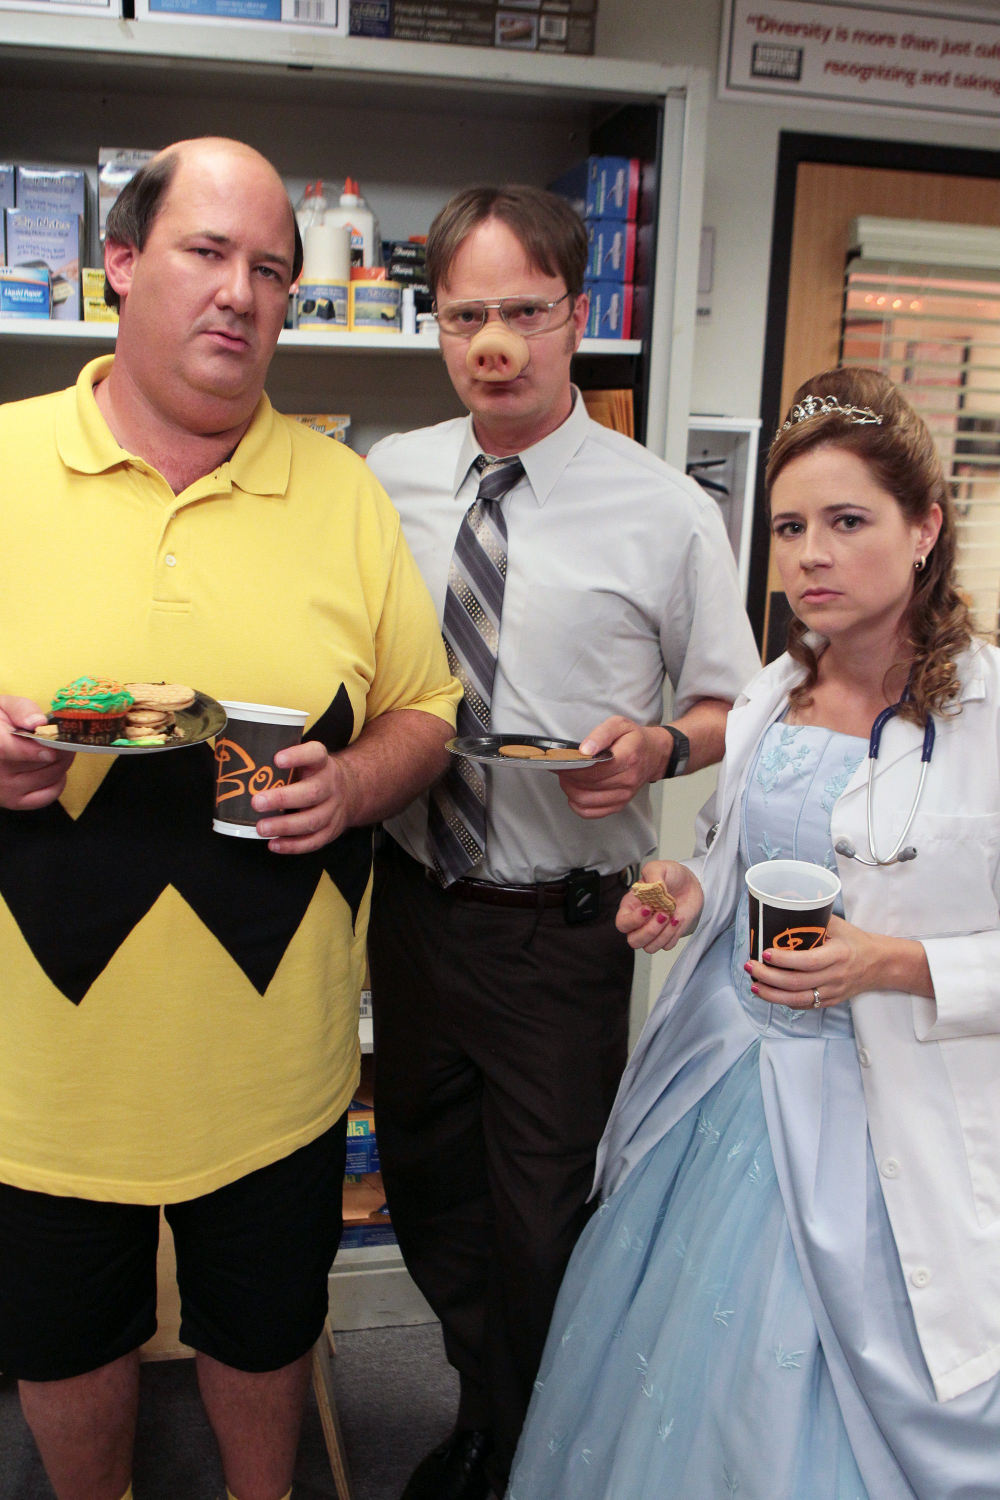 A Definitive Ranking of the Best 'The Office' Halloween Episodes